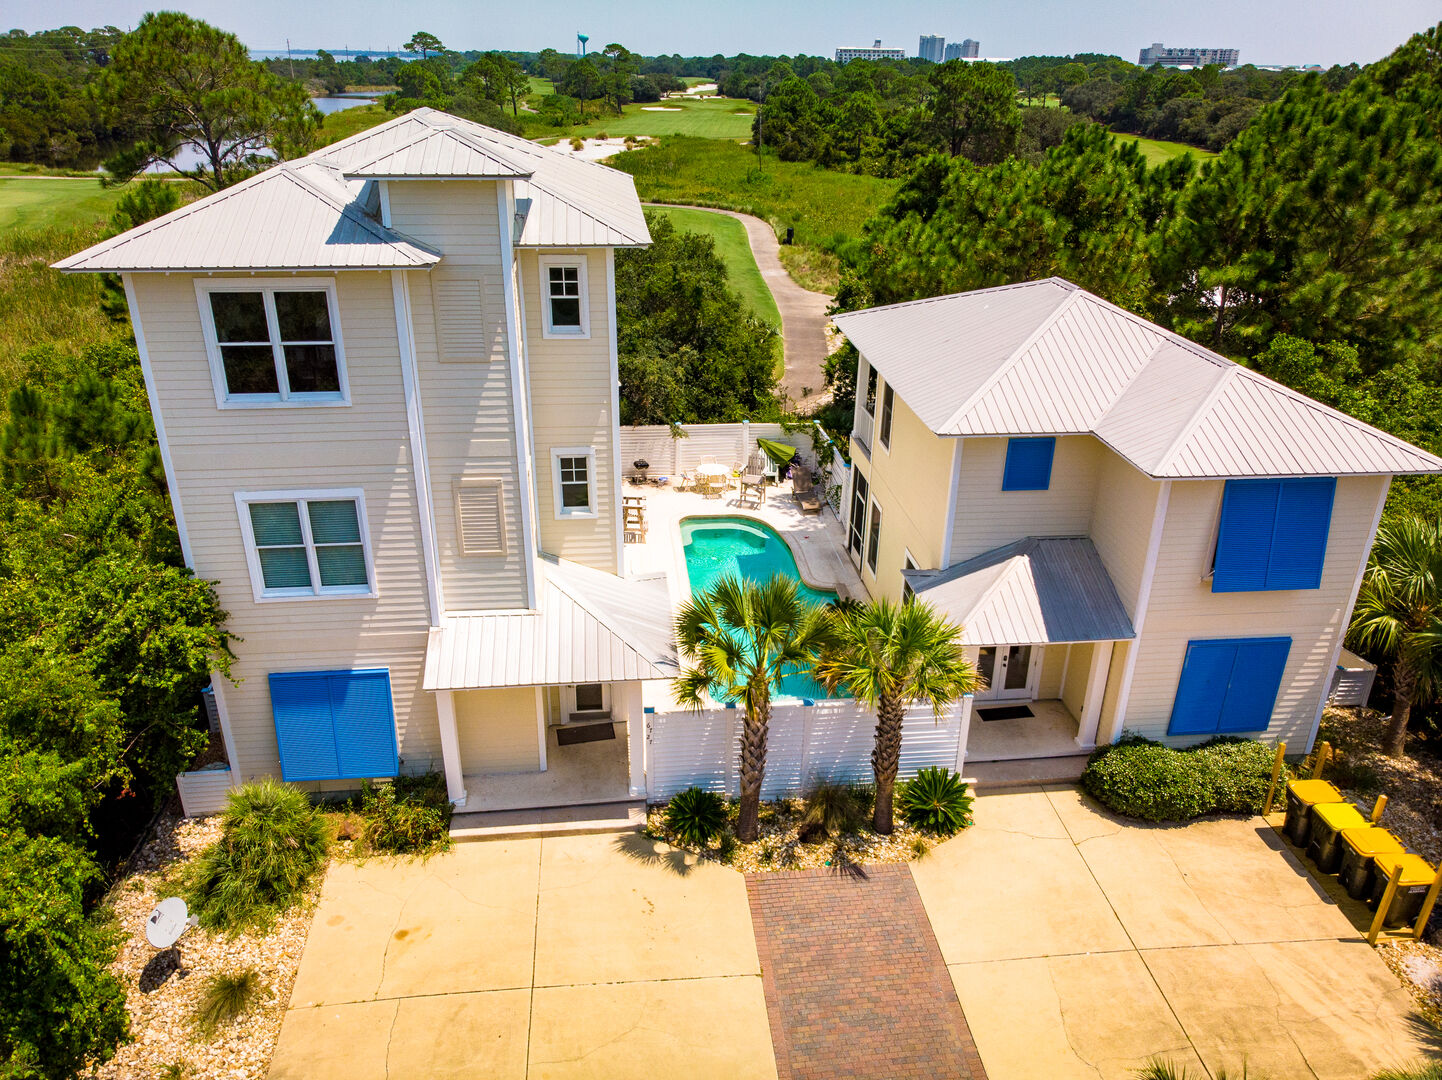 Welcome to The Beach Iris! (Main house pictured on the left)